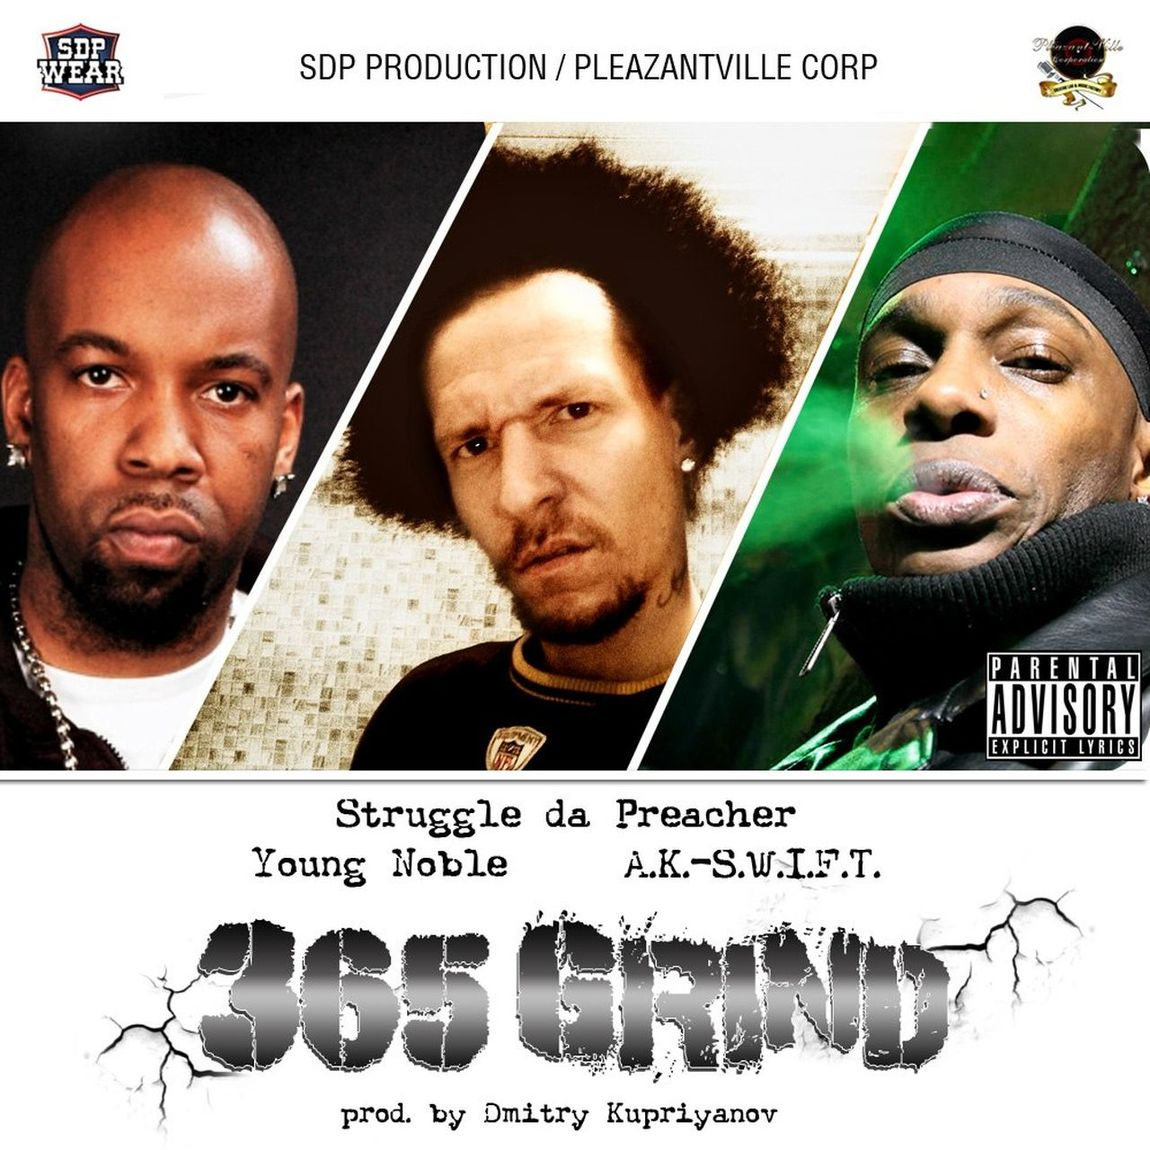 my hottest single 365 Grind ft legendary Young Noble (Outlawz) and AK SWIFT Rap&hiphop Outlawz Single Hardcore